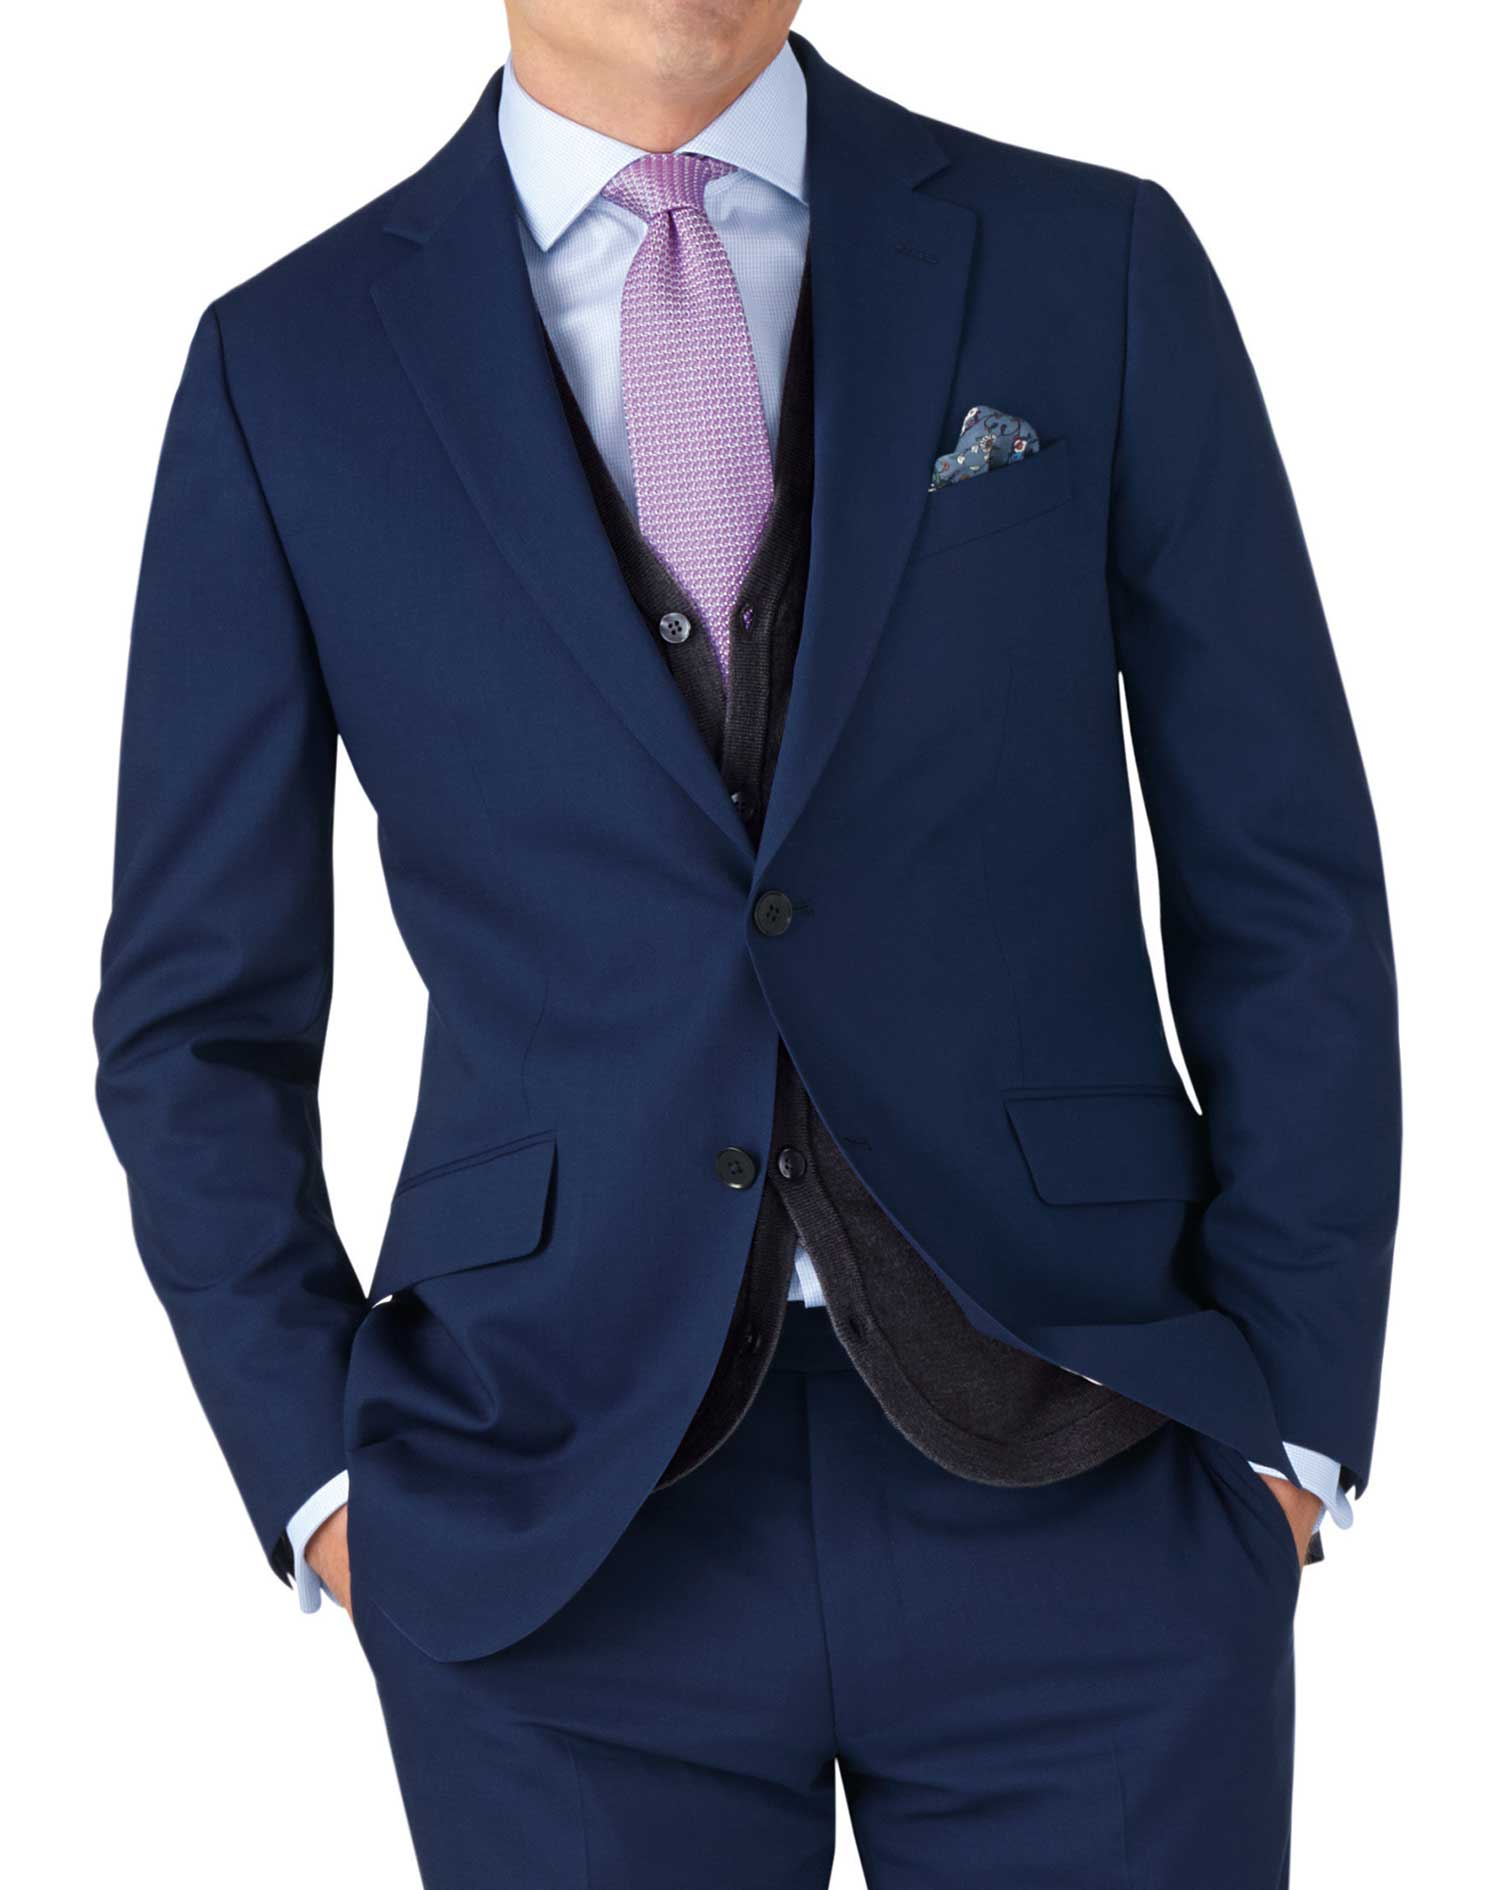 Royal Slim Fit Crepe Business Suit Wool Jacket Size 40 Long by Charles Tyrwhitt